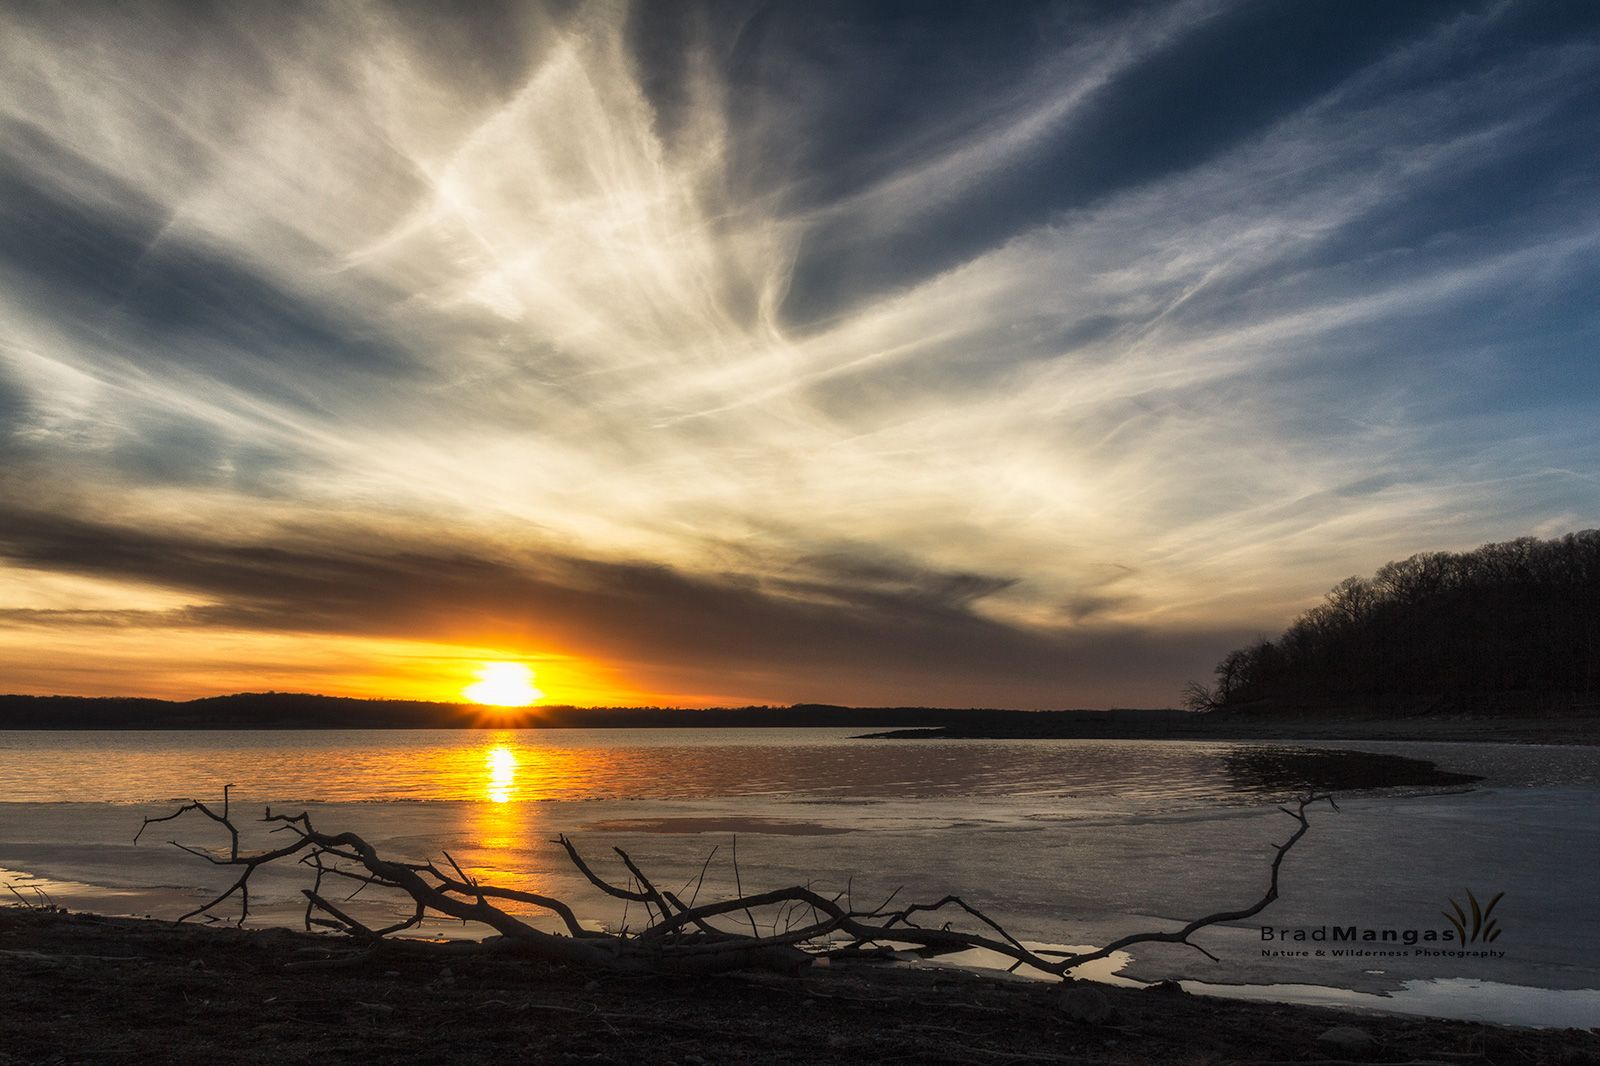 1600x1066 Wallpaper - February 2013 | Brad Mangas | Nature | Landscapes ...